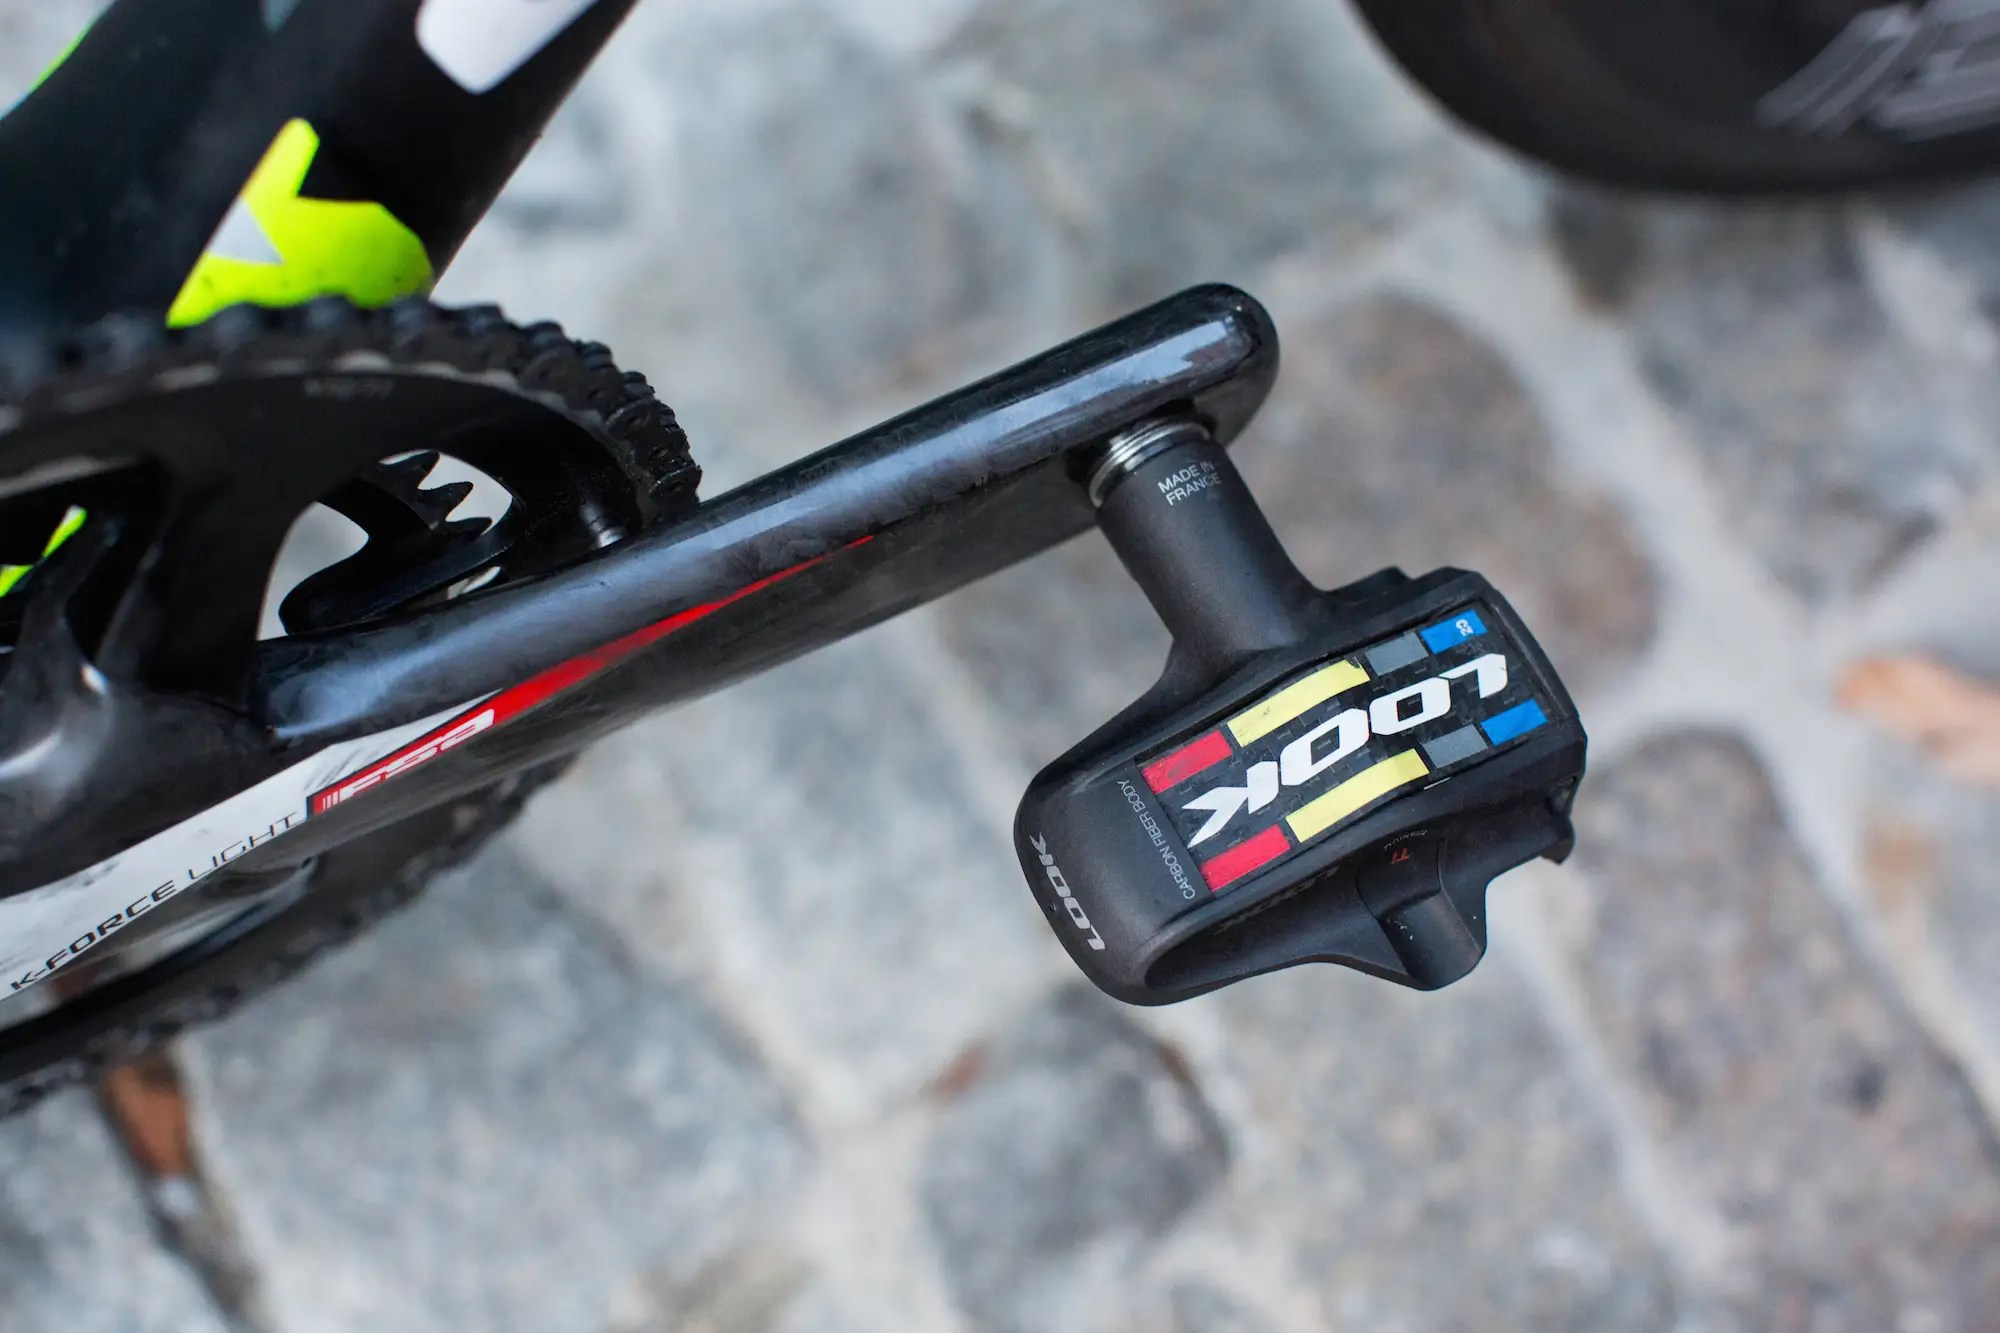 Sagan rides Look KeO Blade clipless pedals.